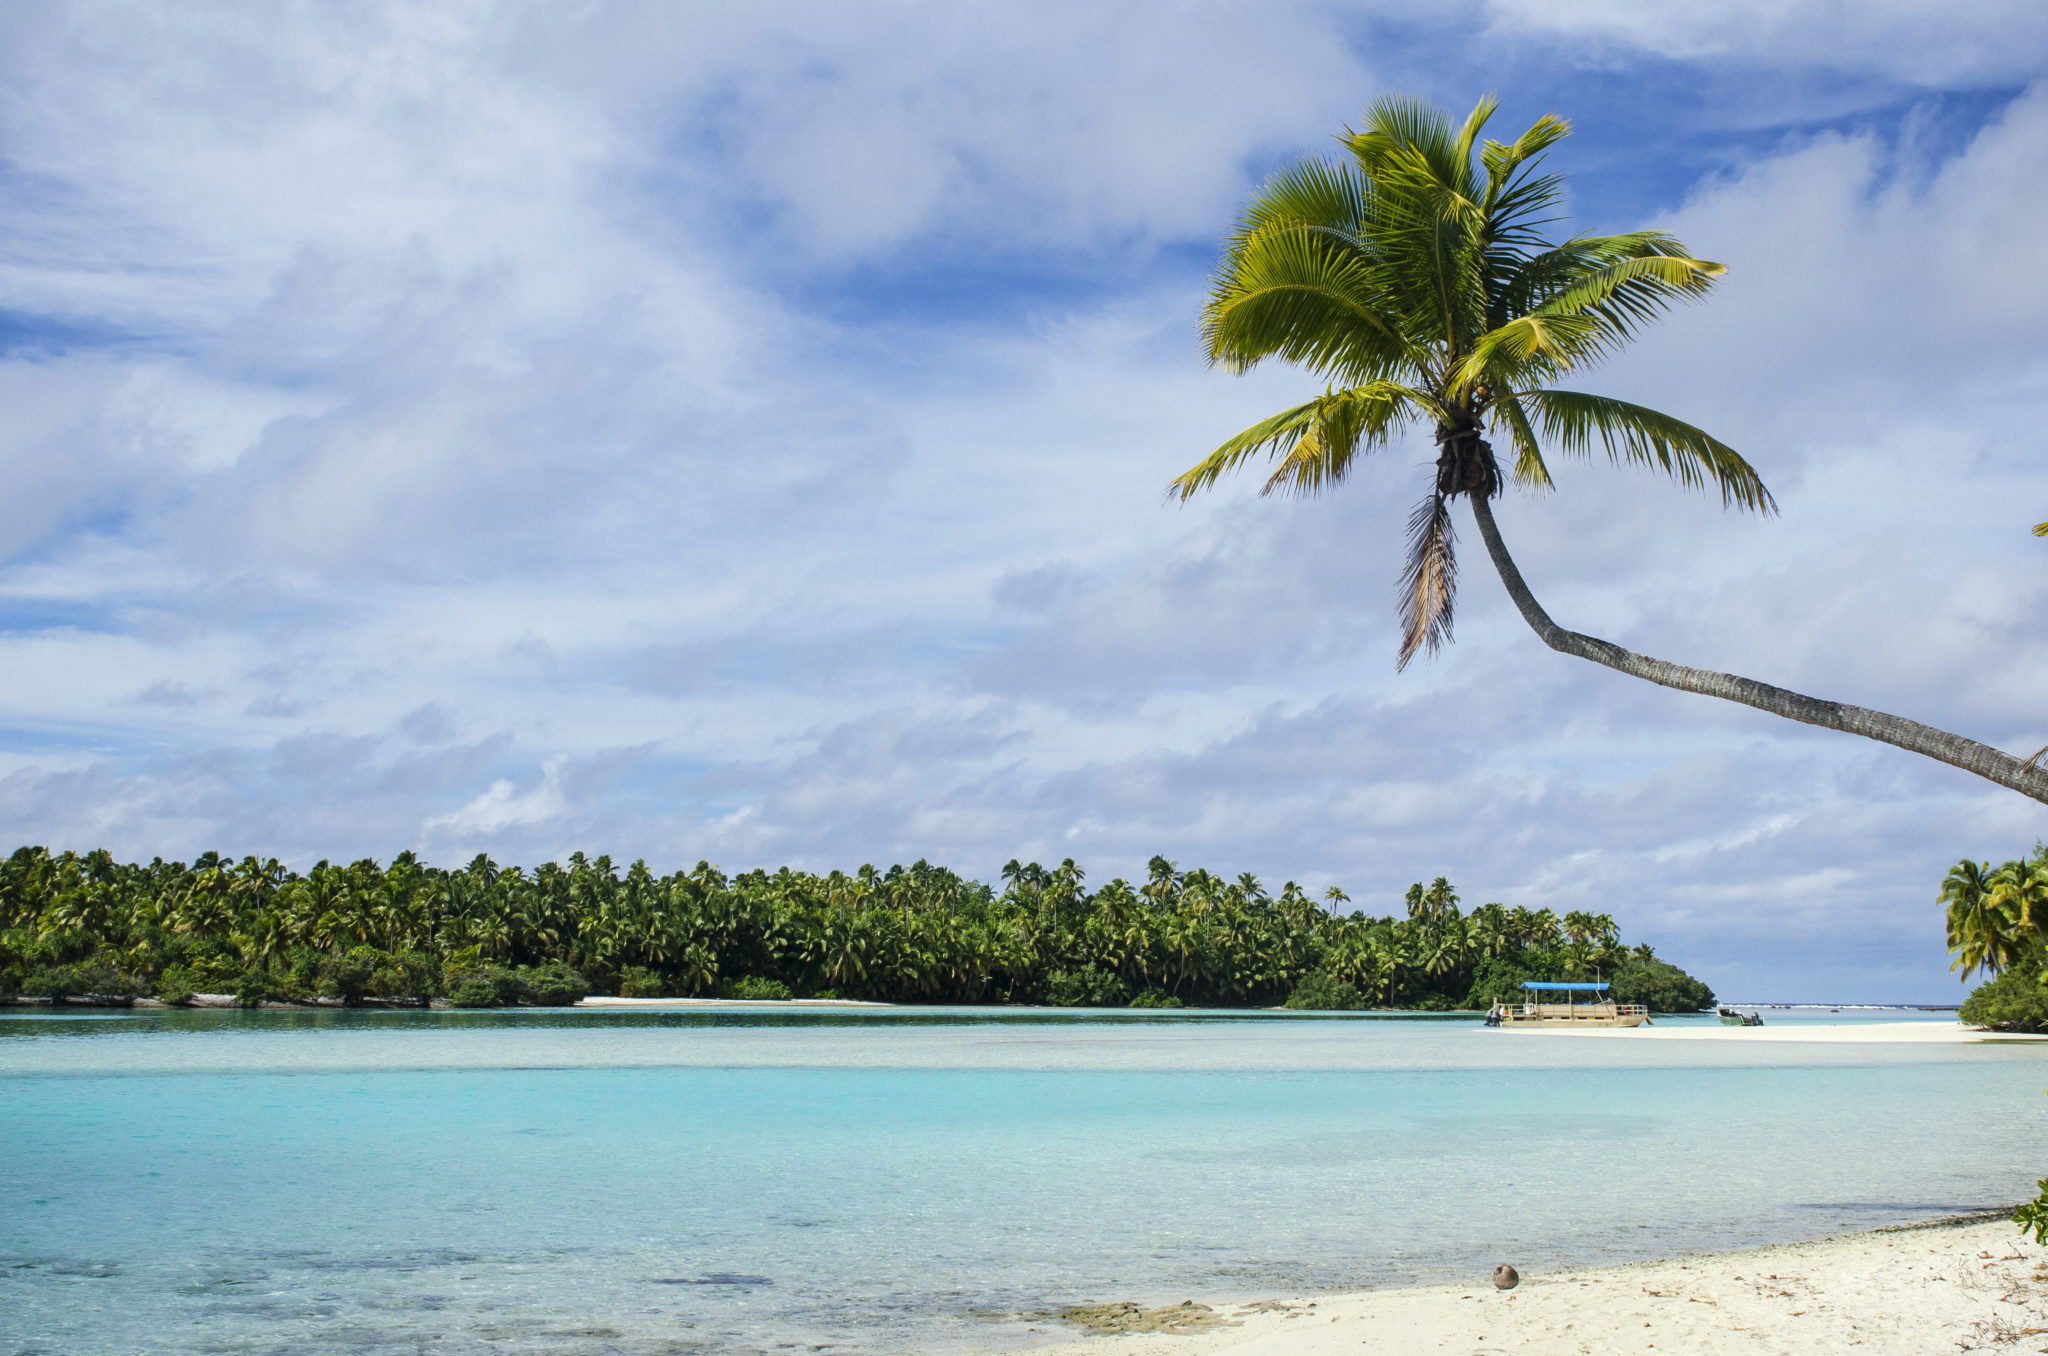 Aitutaki-Cook-Islands-Einzelne-Palme